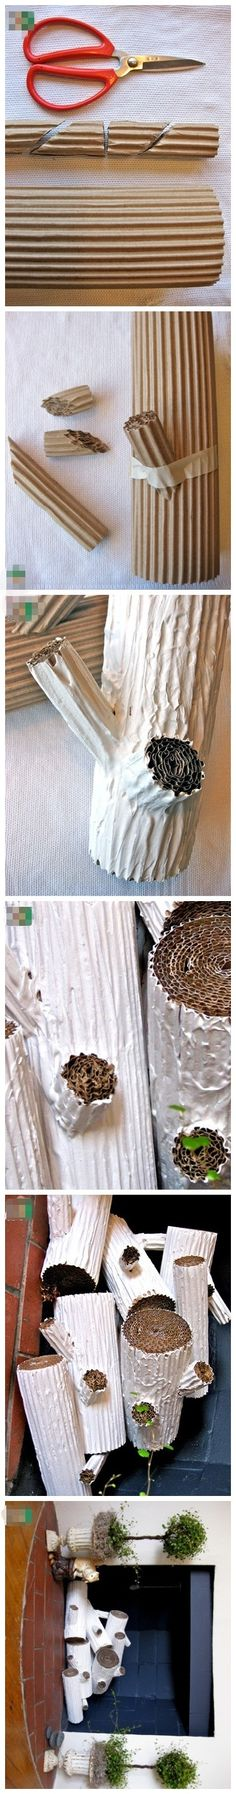 {DIY Tree Branches} from Corrugated Paper Rolls + Scissors + Tape + Paint